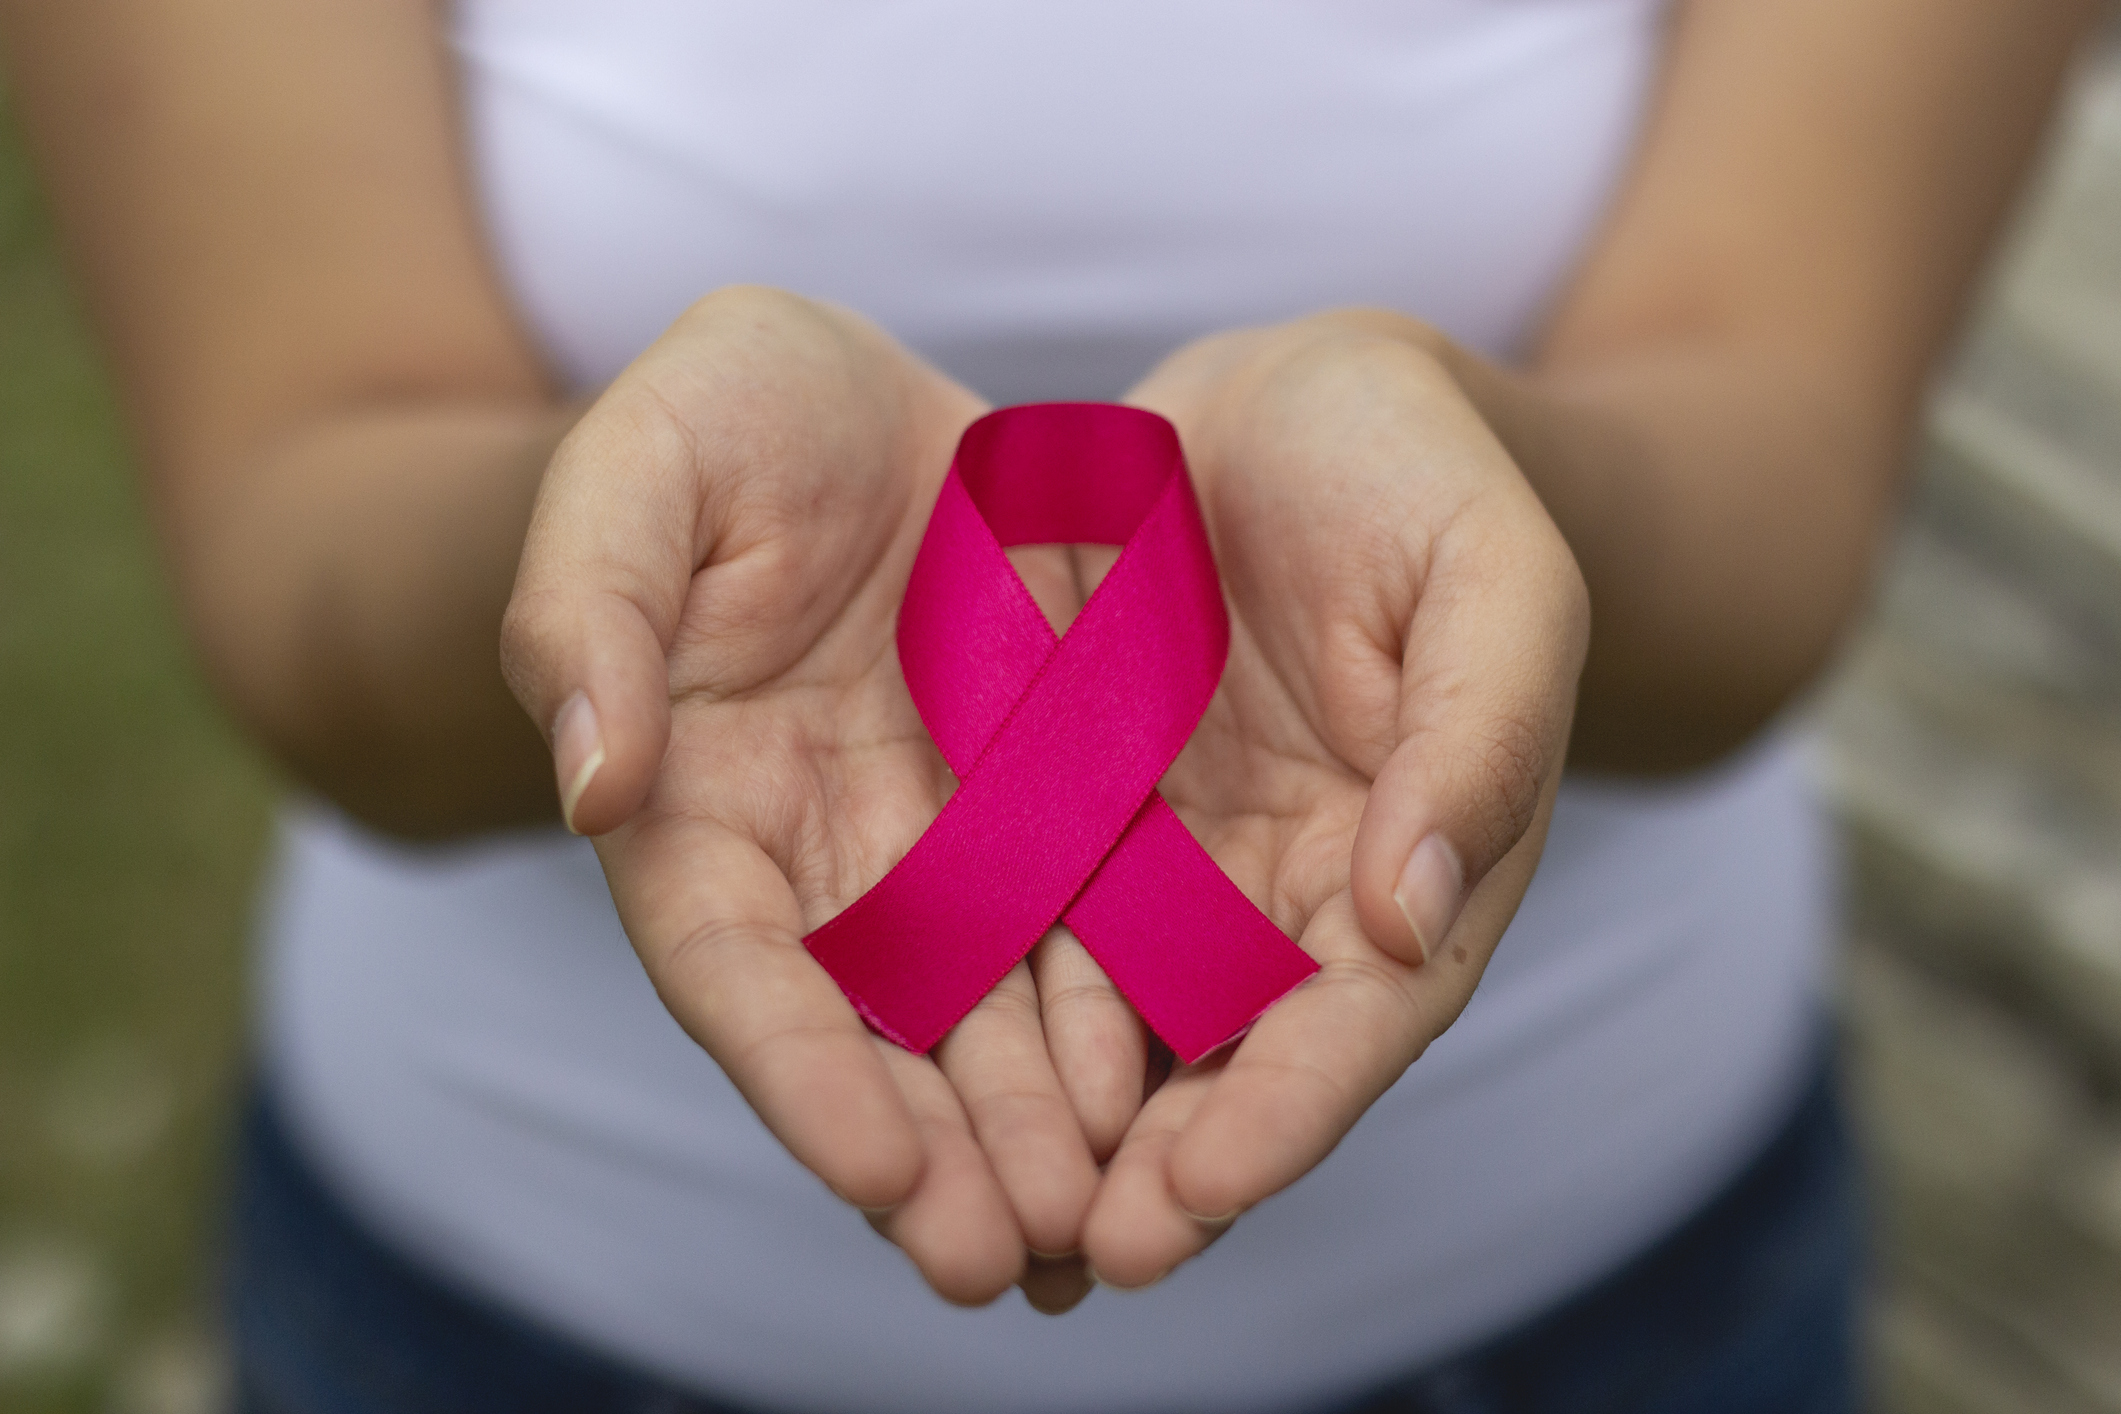 Breast Cancer - In 50-70% of breast cancer patients, progesterone receptor (PR) signaling is upregulated, leading to worse outcomes for patients. In addition, PR signaling has been identified as a key resistance mechanism to current therapies.Learn more